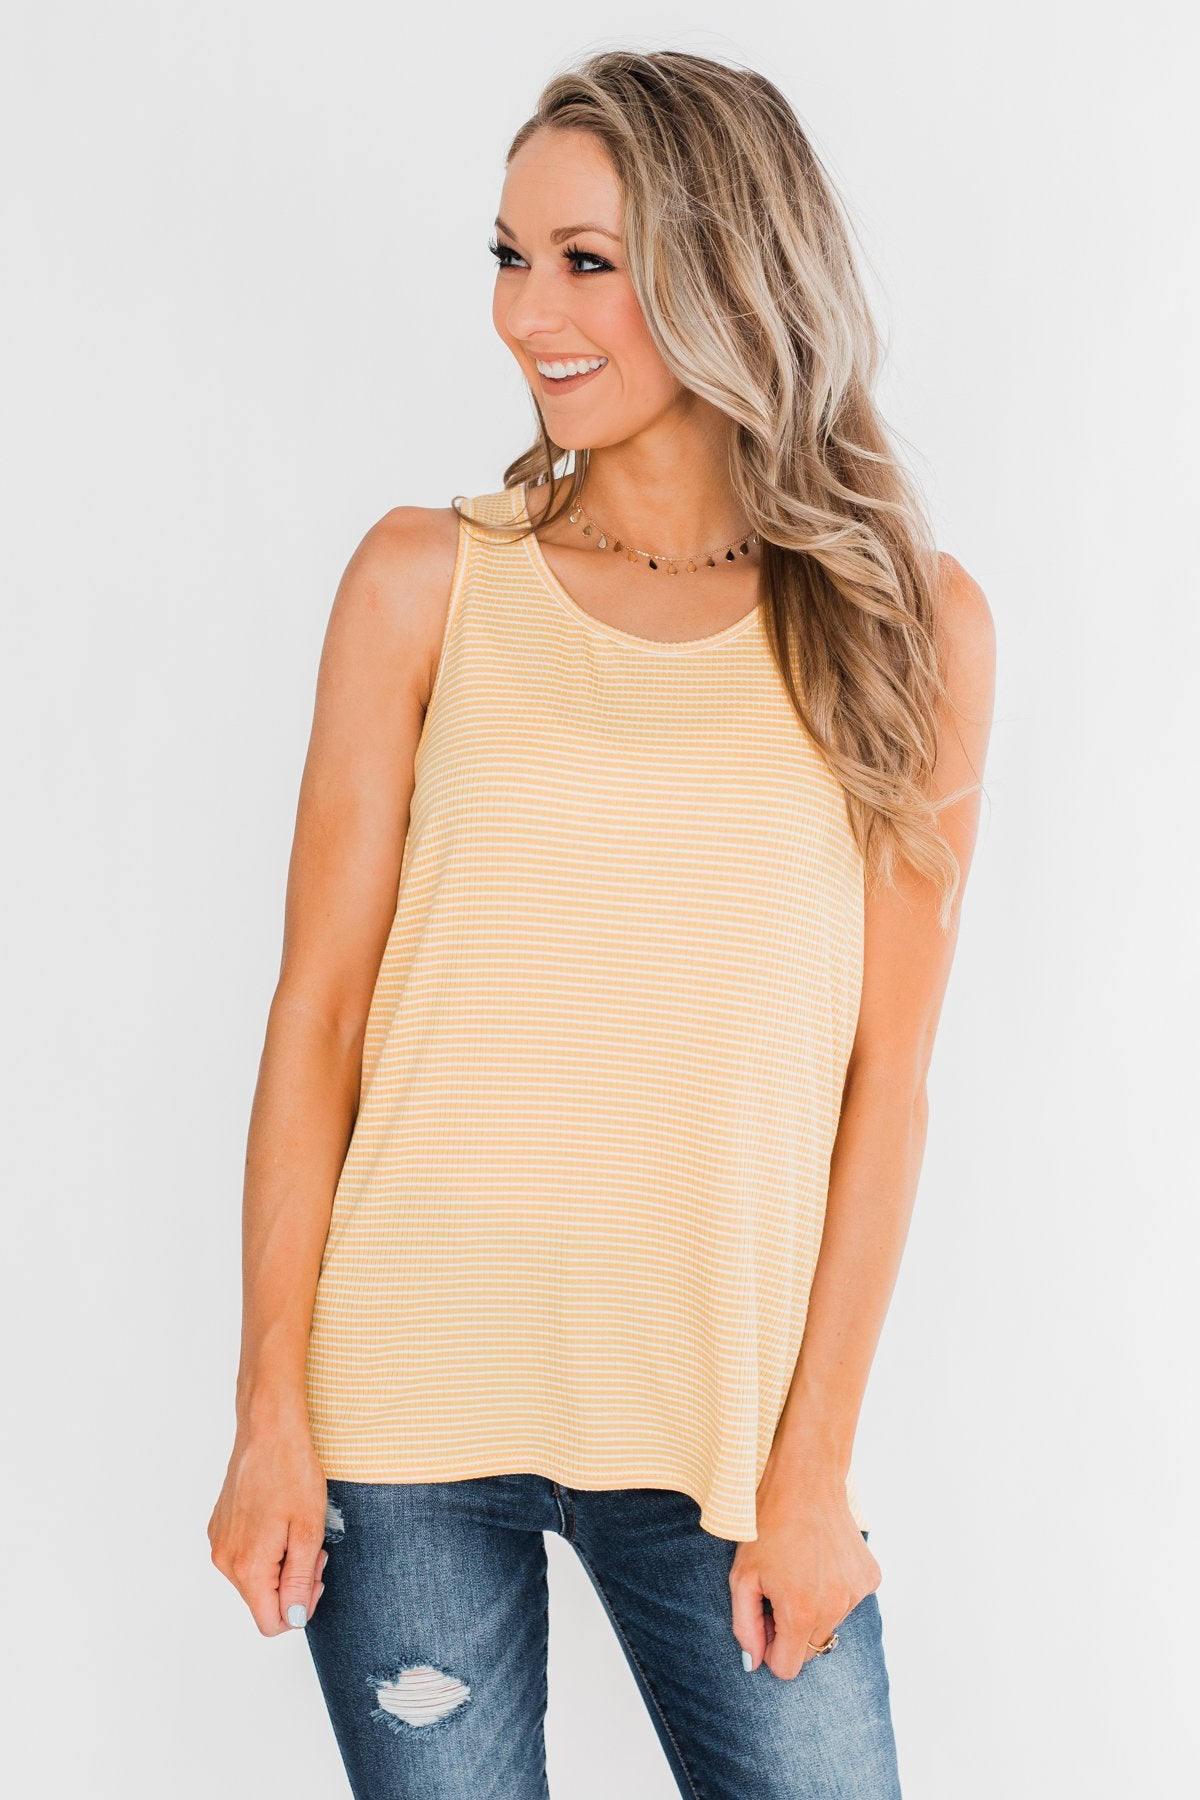 Rays Of Sunshine Tank Top- Yellow